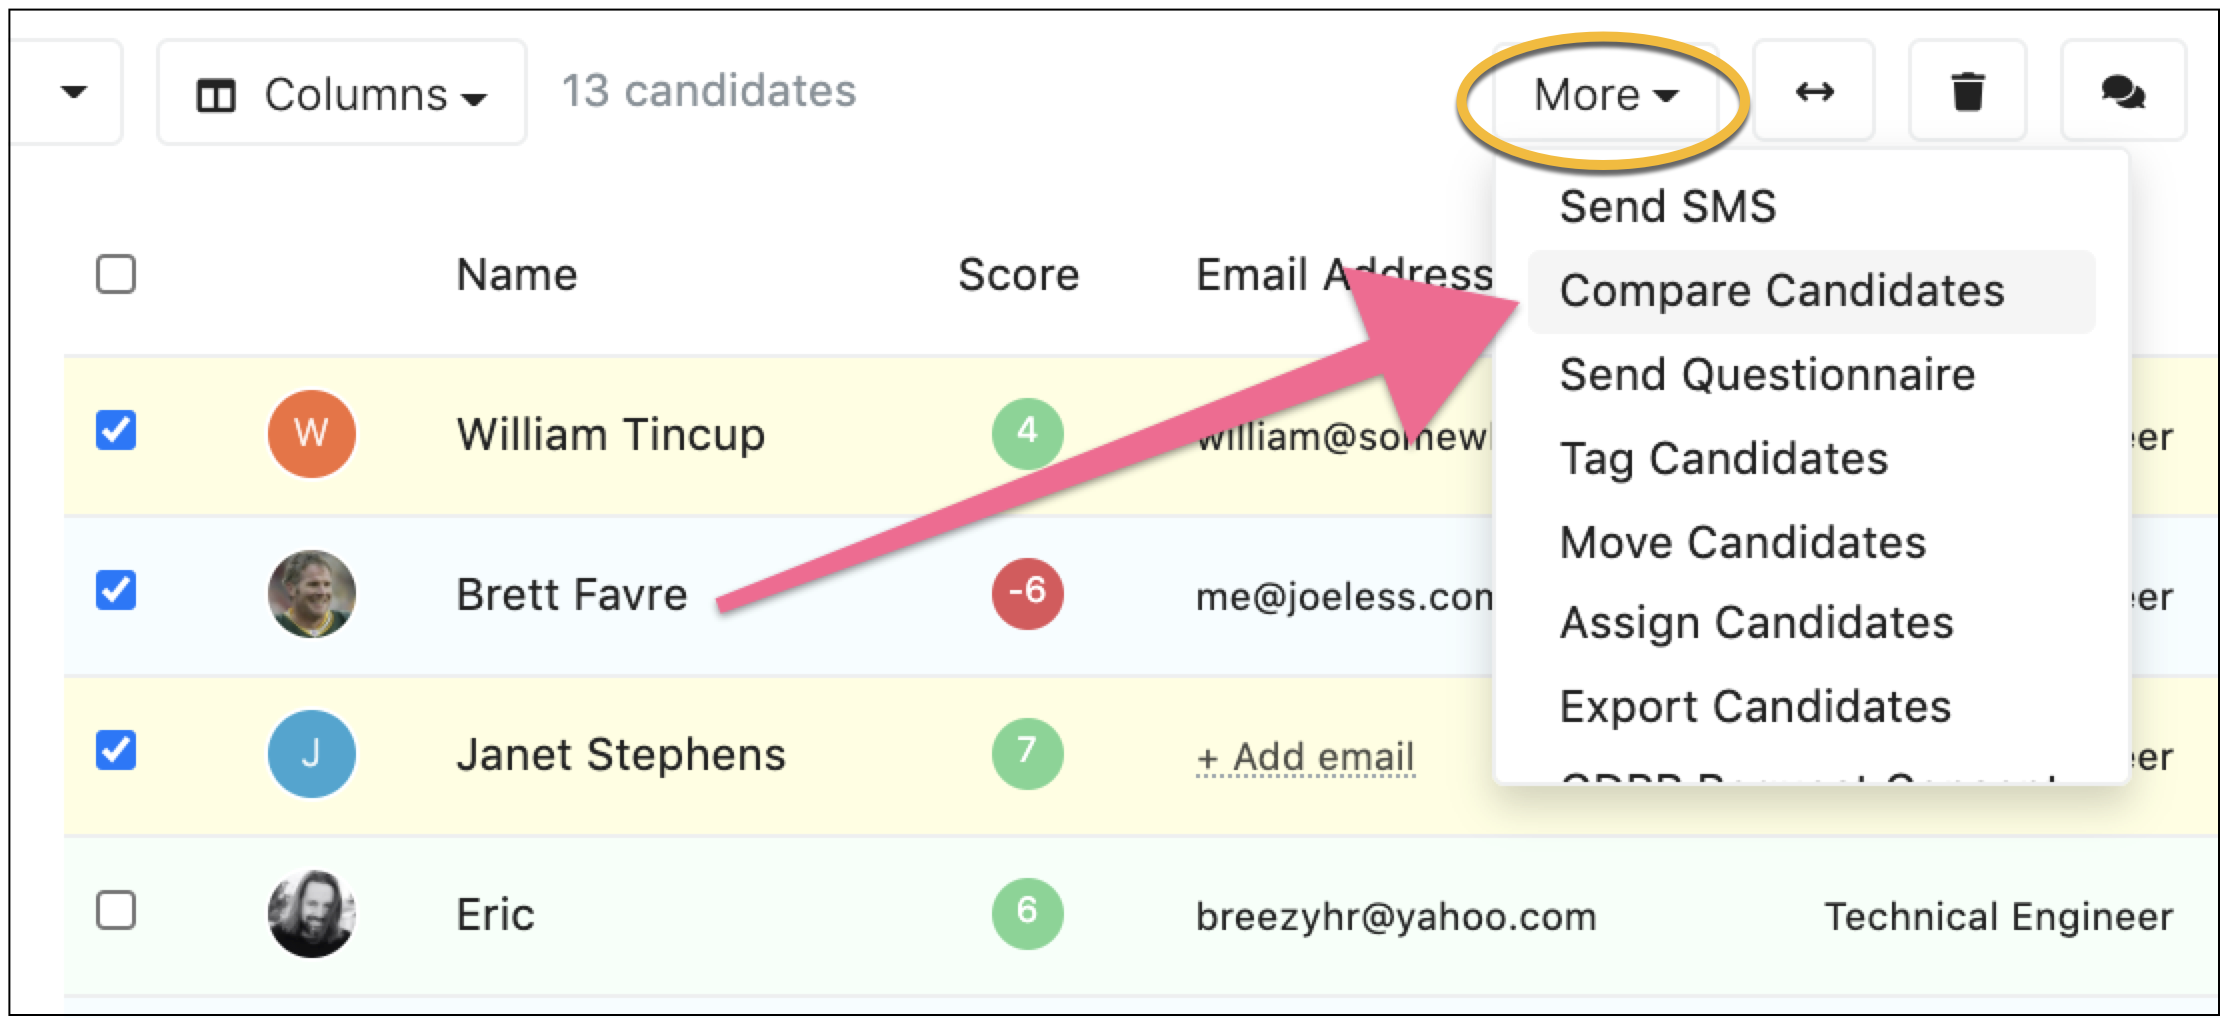 Accessing candidate compare from the Candidates tab